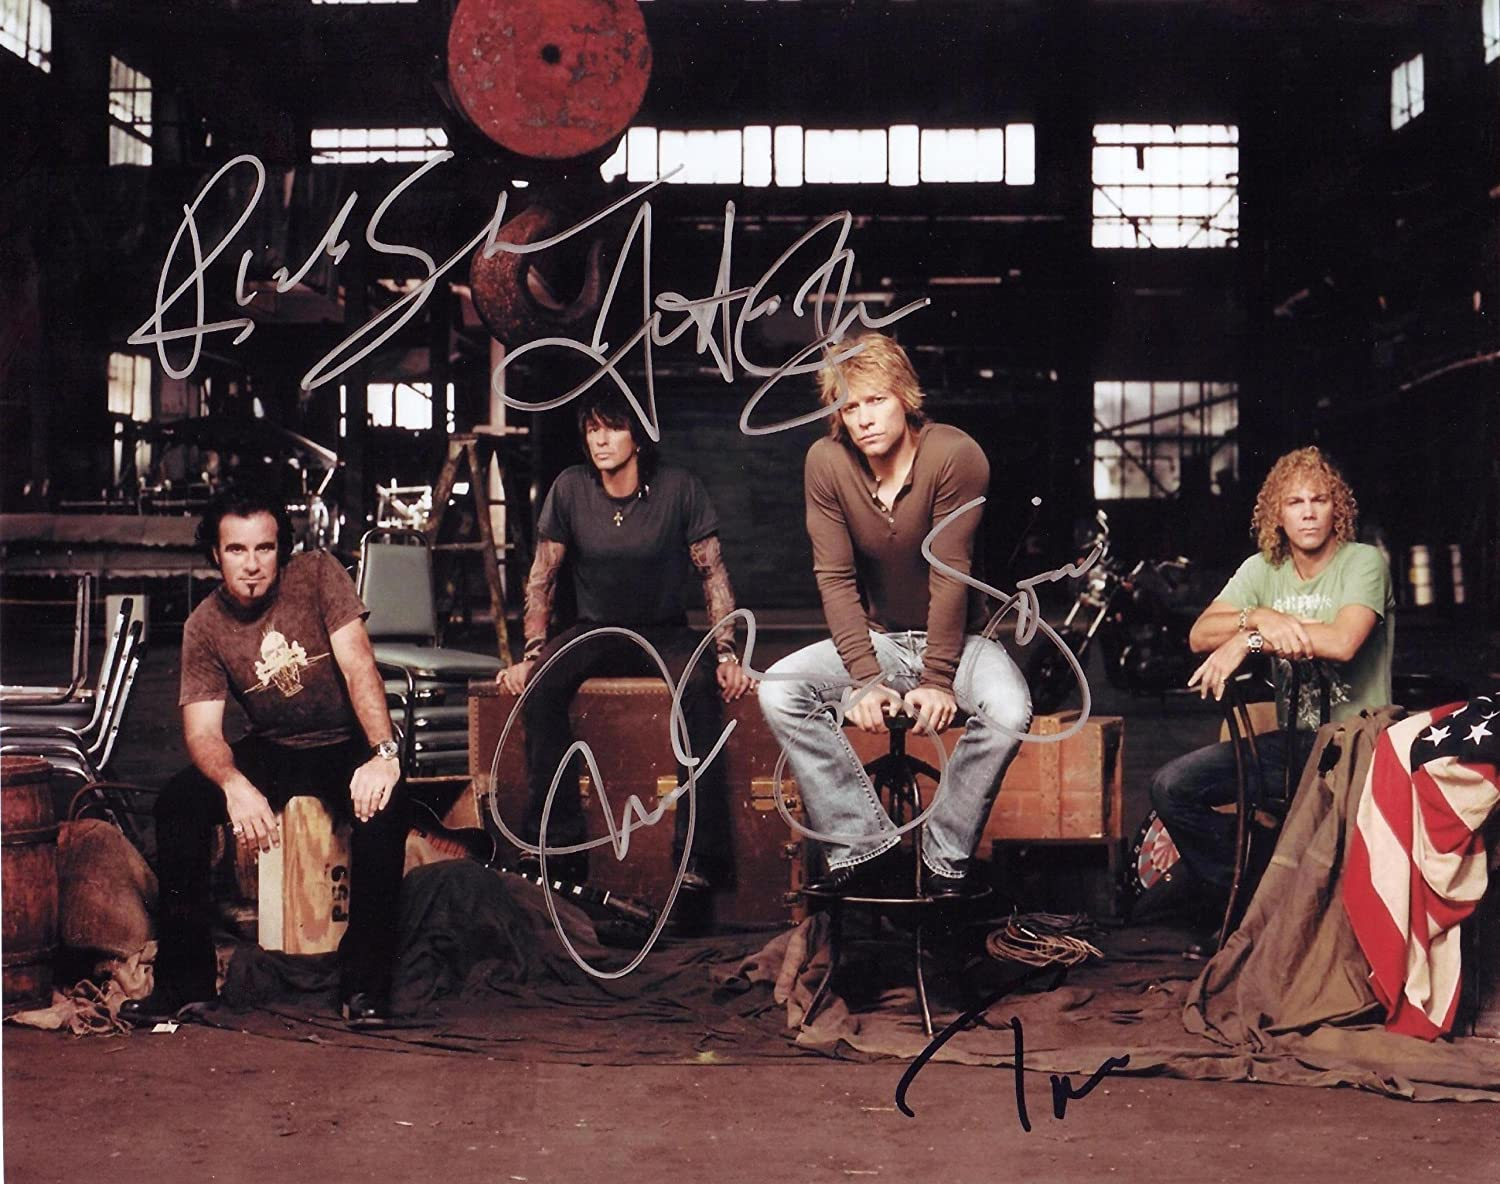 Bon Jovi Autographed Signed 8 X 10 RP Photo - Mint Condition bap b a p jung daehyun dae hyun autographed signed photo 6 photos set 4 6 inches korean freeshipping 2016 a